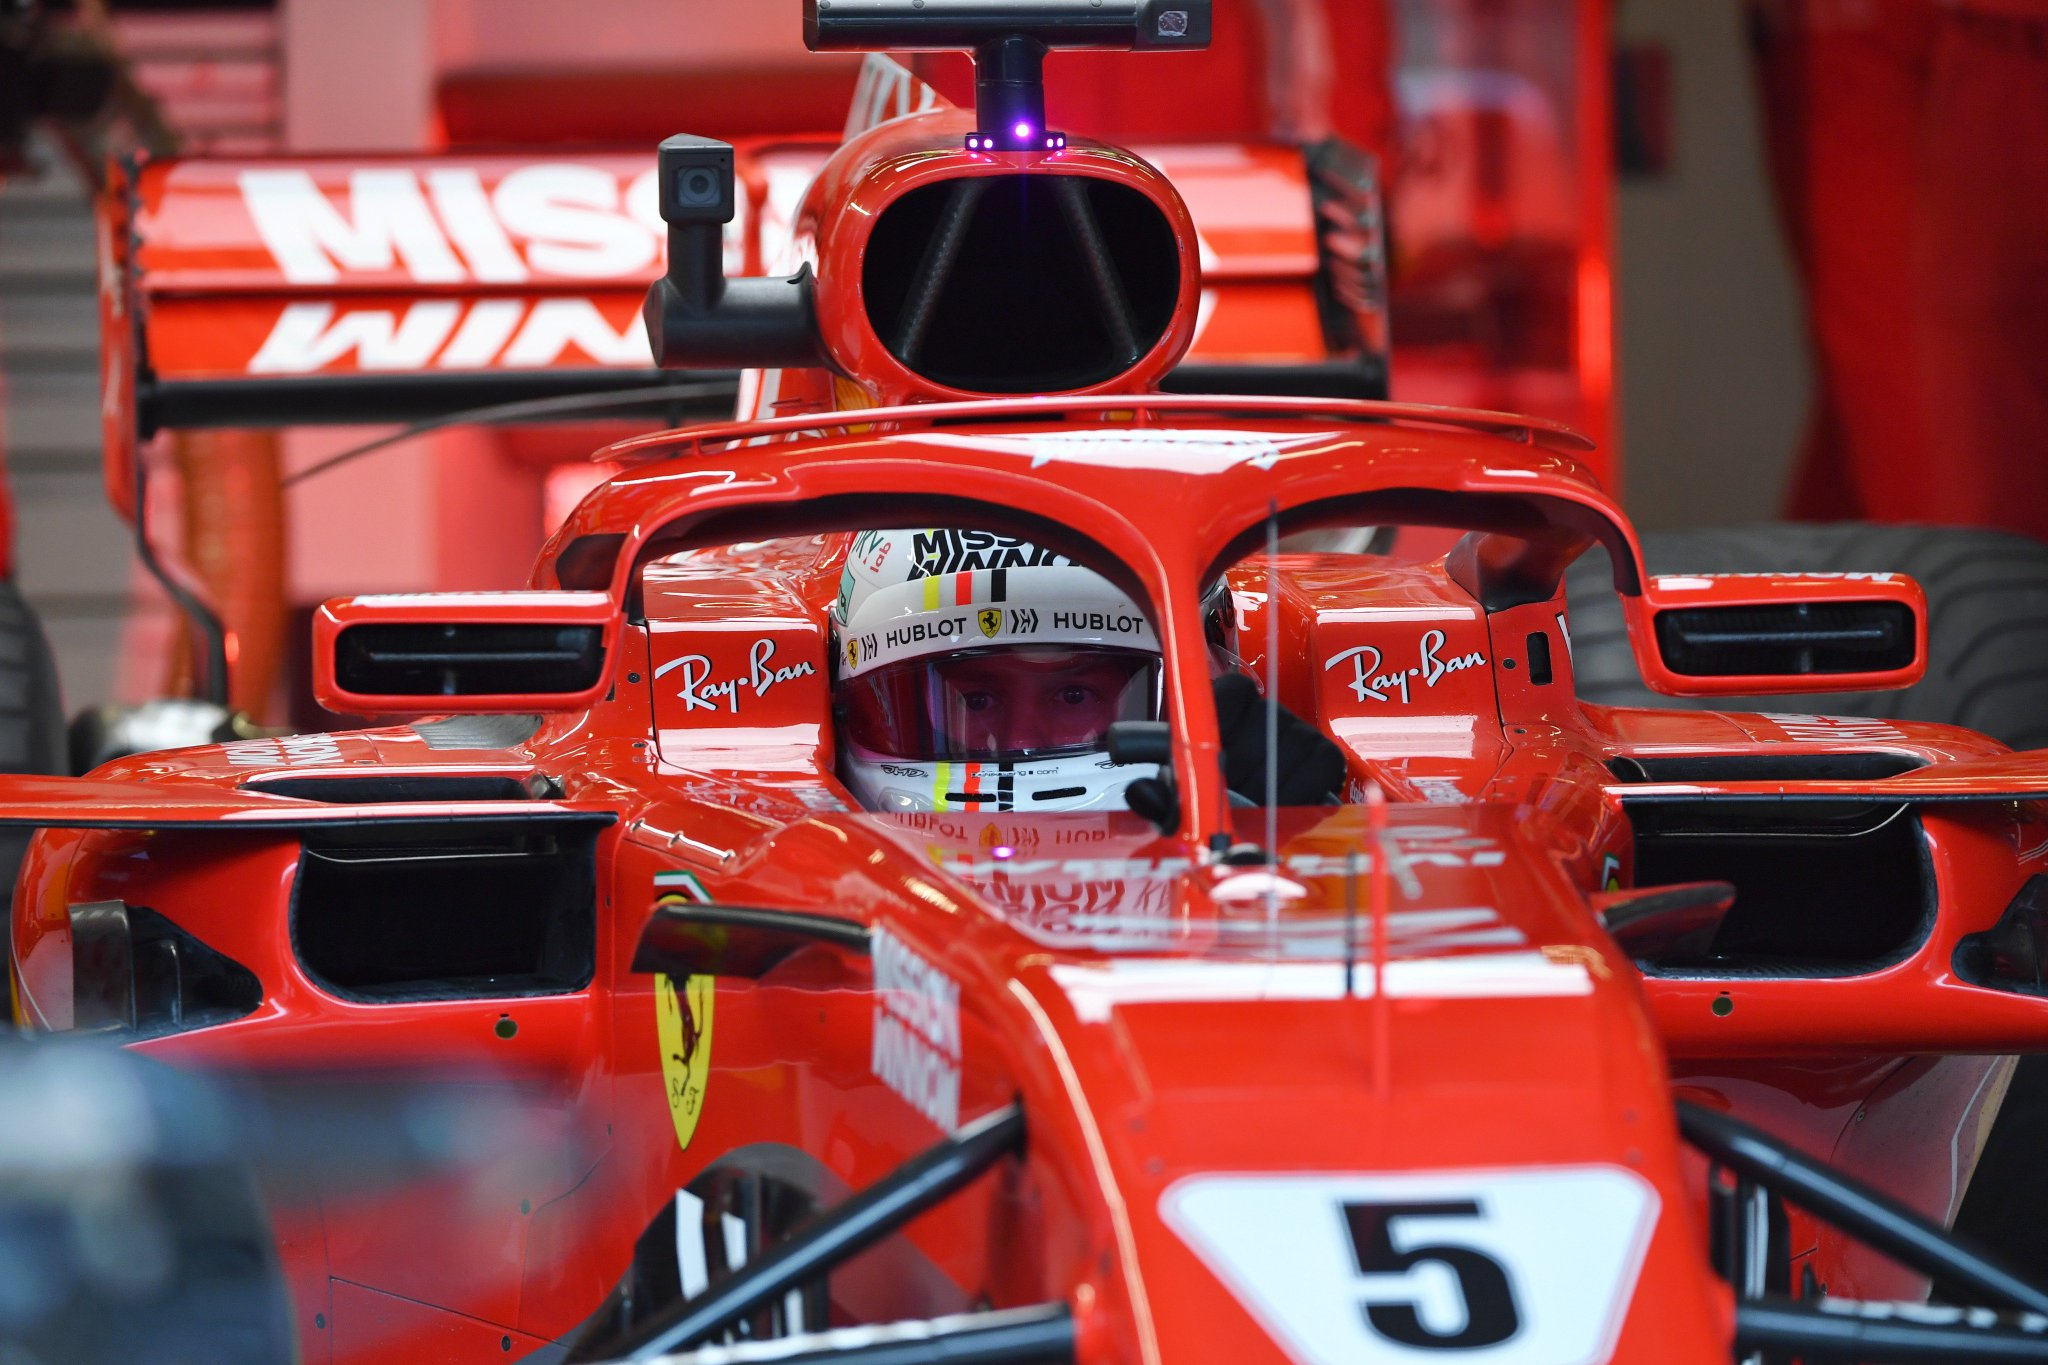 BREAKING: Sebastian Vettel has been handed a three-place grid penalty for 'not slowing sufficiently during a red flag period' during FP1 #USGP 🇺🇸 #F1 https://t.co/P9VIhvwy56